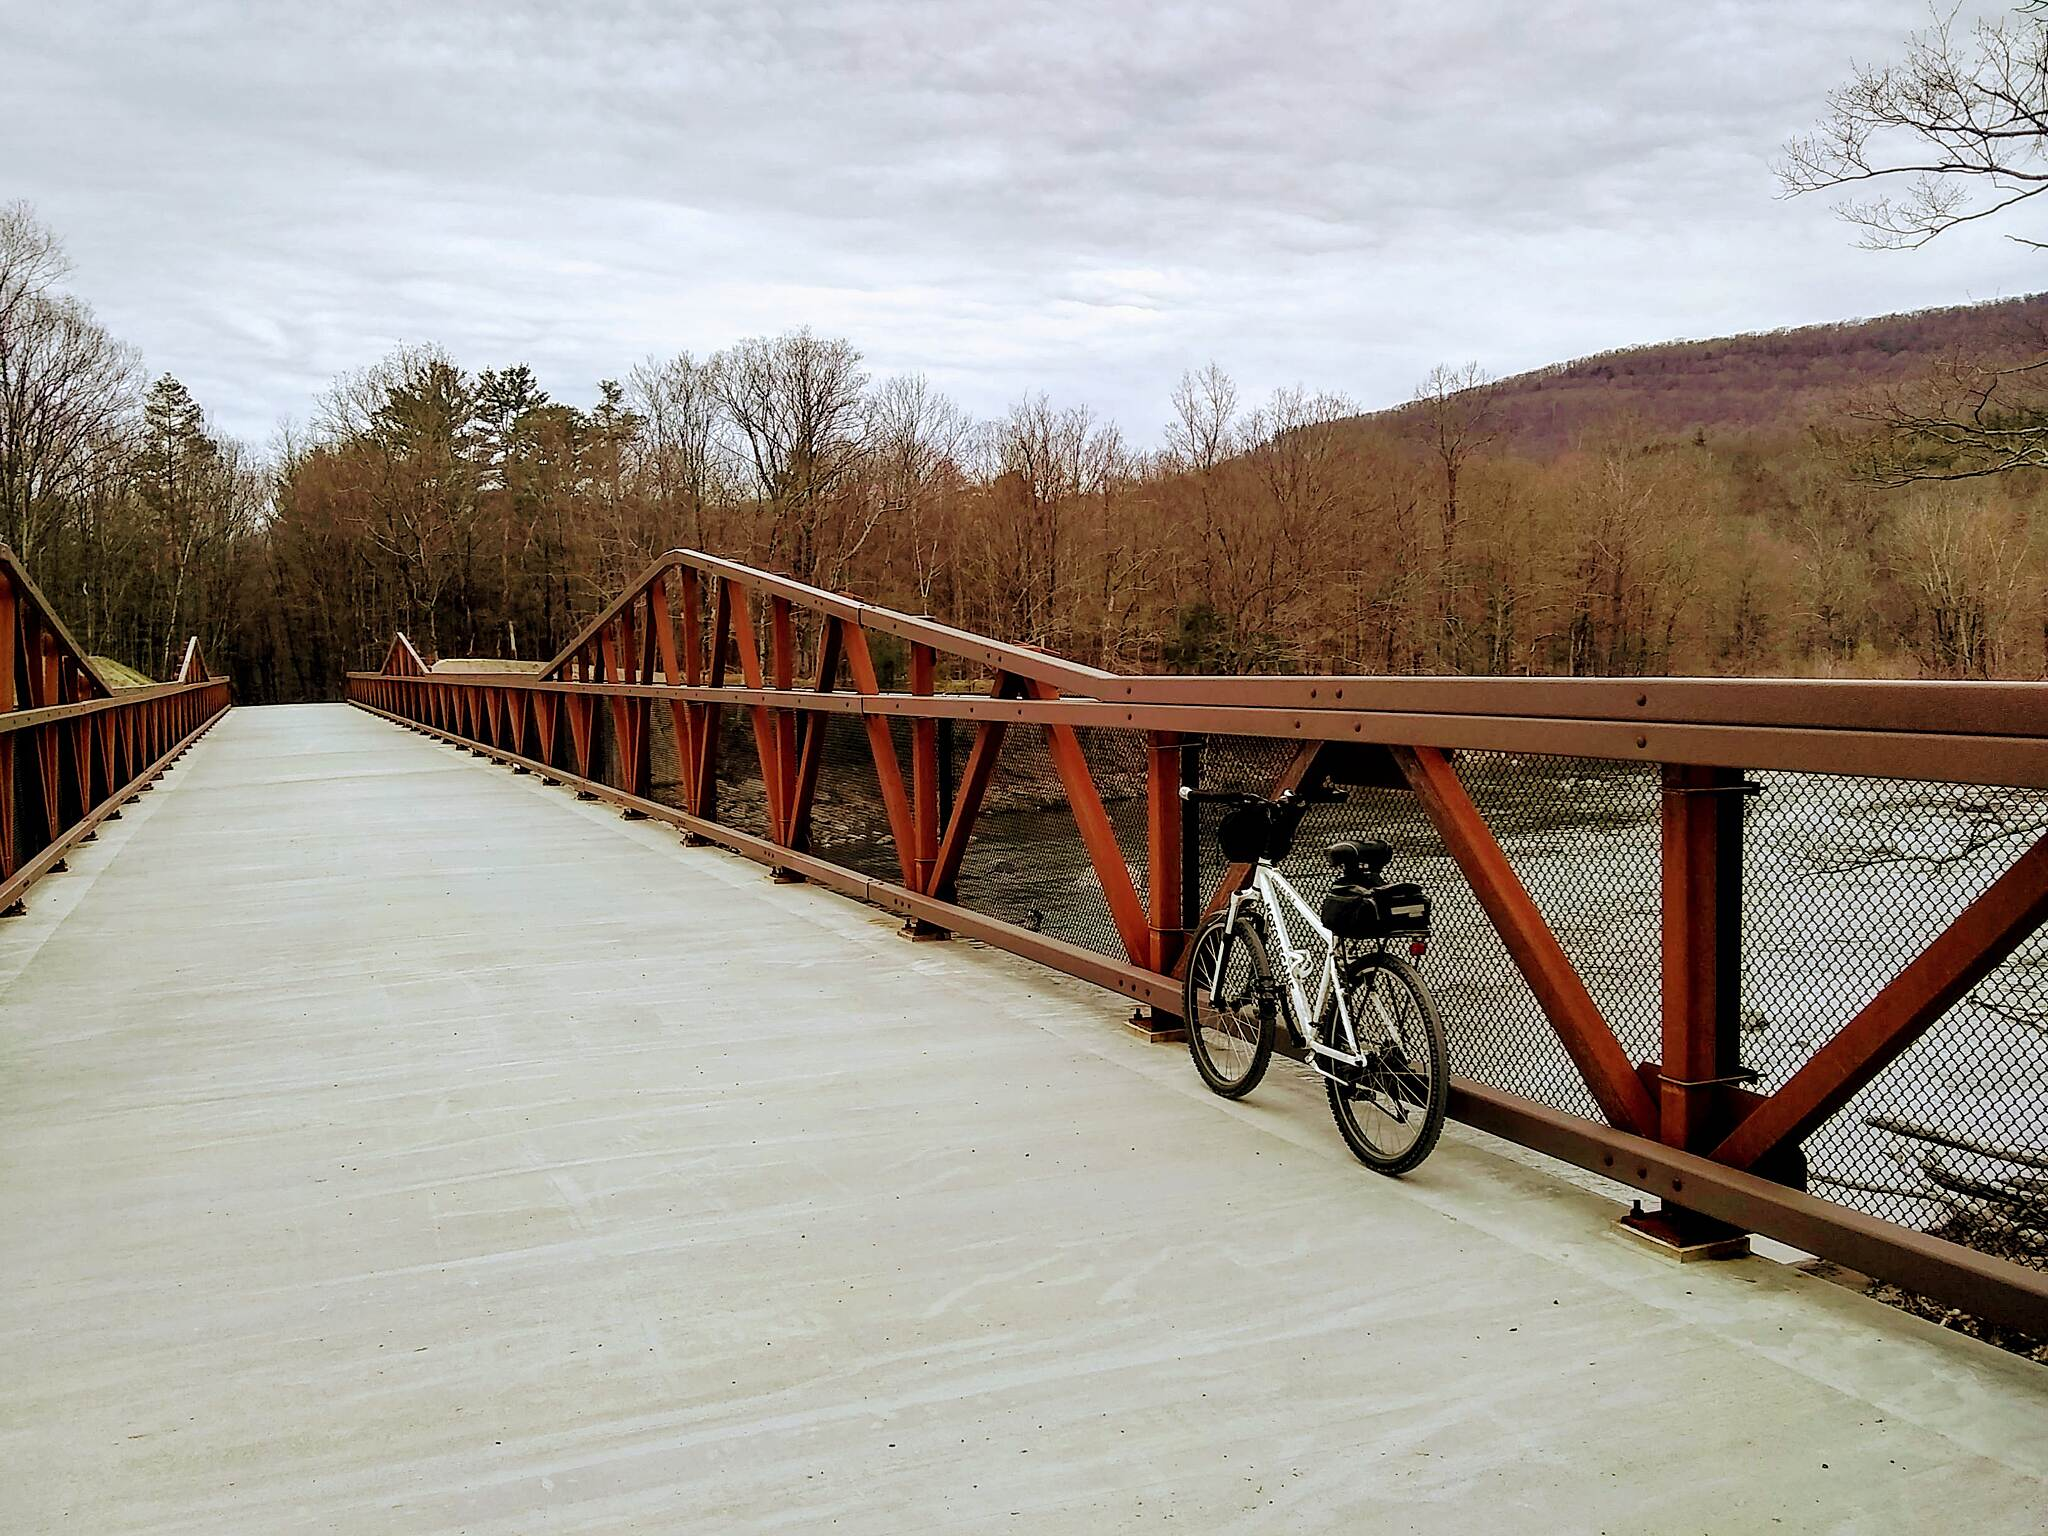 Ashokan Rail Trail First bridge on the western end over the Esopus Creek Several fly fishers were standing in the cold rushing waters in late April 2020.